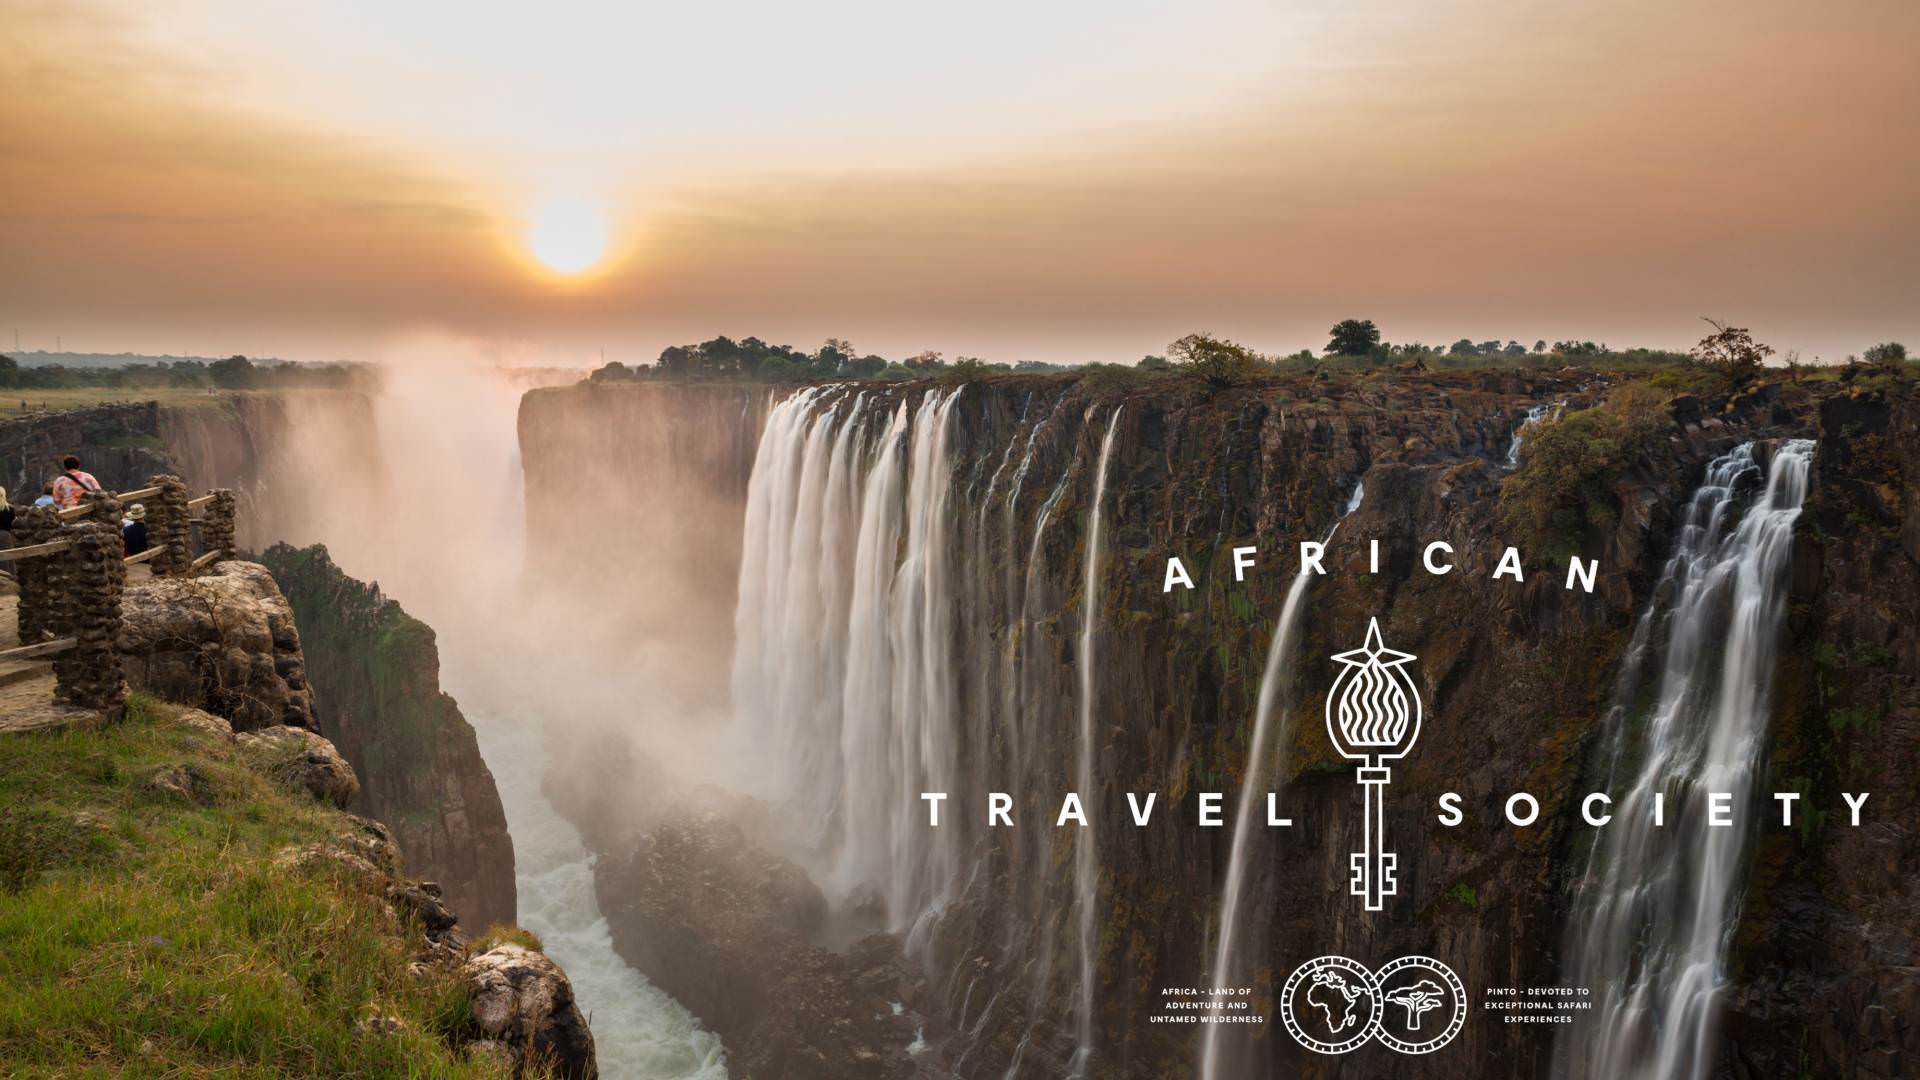 African Travle society pintoafrica.com